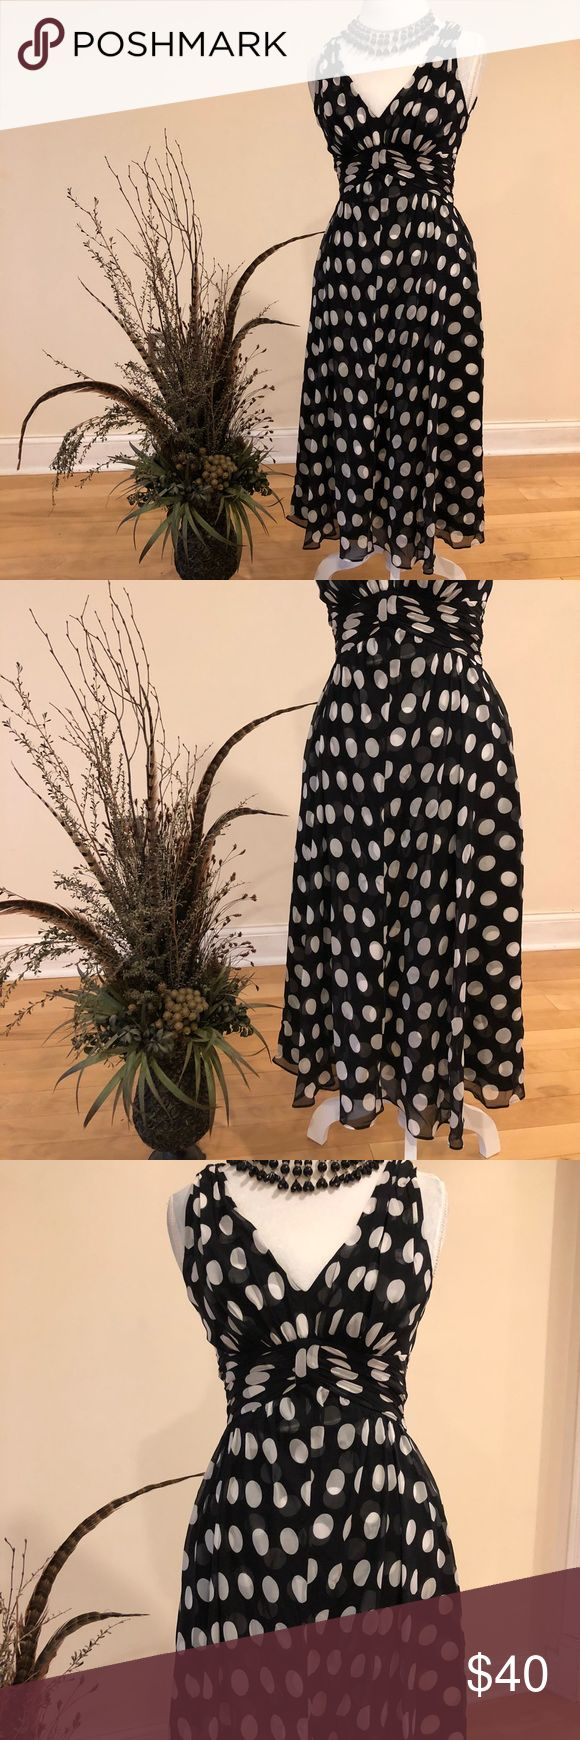 [White House Black Market] polka dot dress Shell 100% Silk, lining 100% Polyester.  Size 2, New without tags.  Halter top, polka dot print, gathered waste, zipper back.  Where it to the prom, wedding, party, night out on the town. White House Black Market Dresses